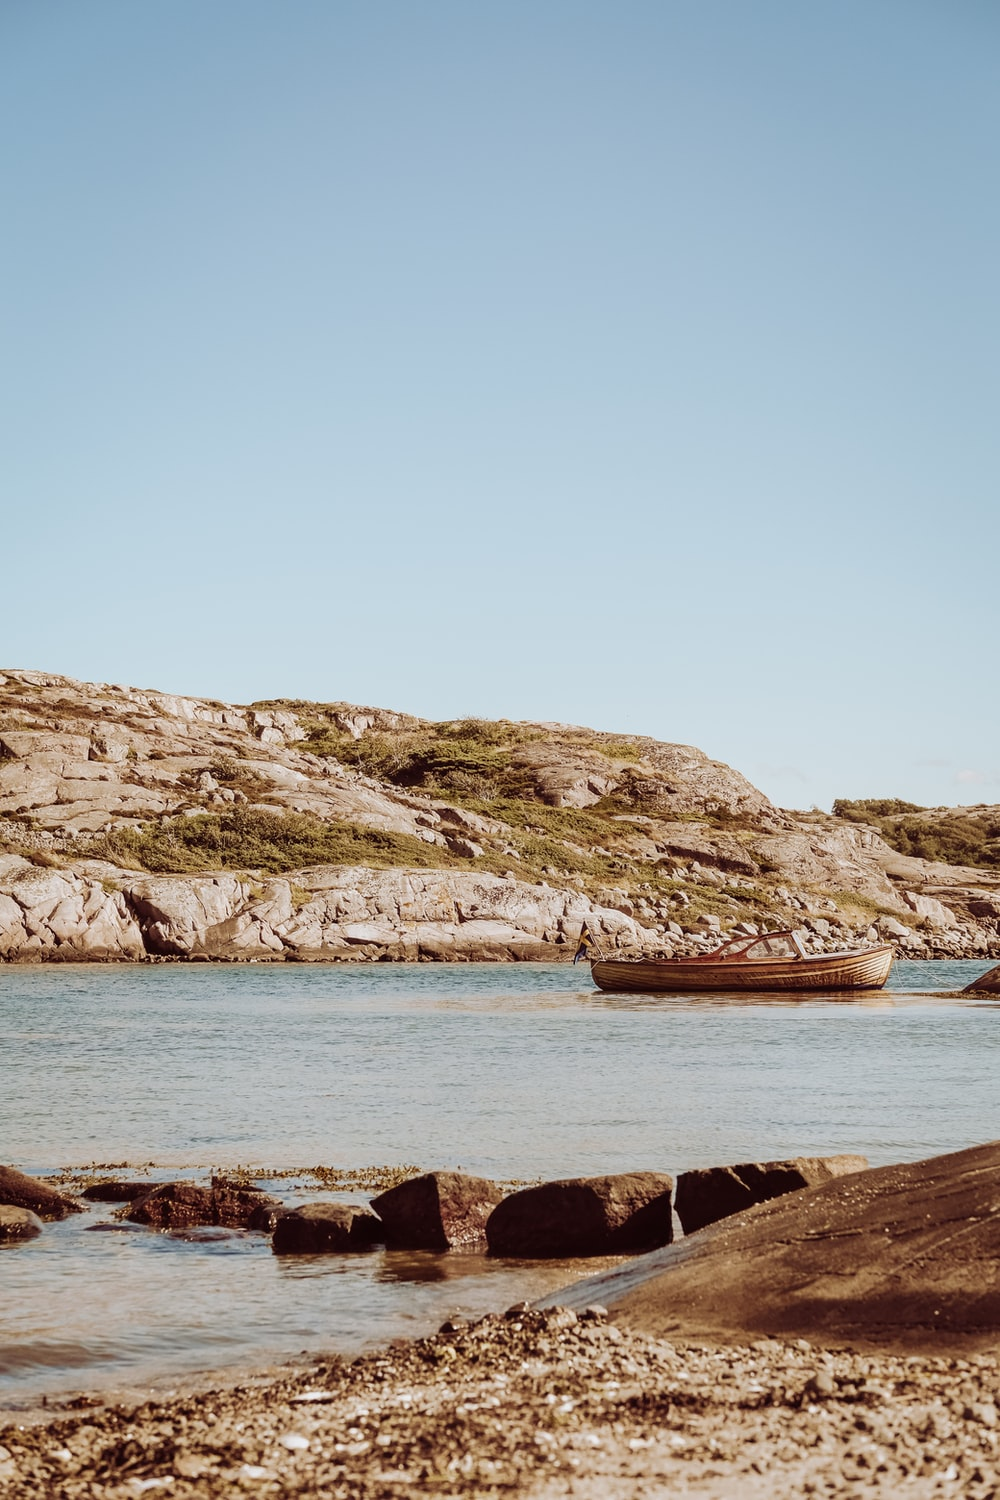 brown boat on sea near brown rock formation during daytime